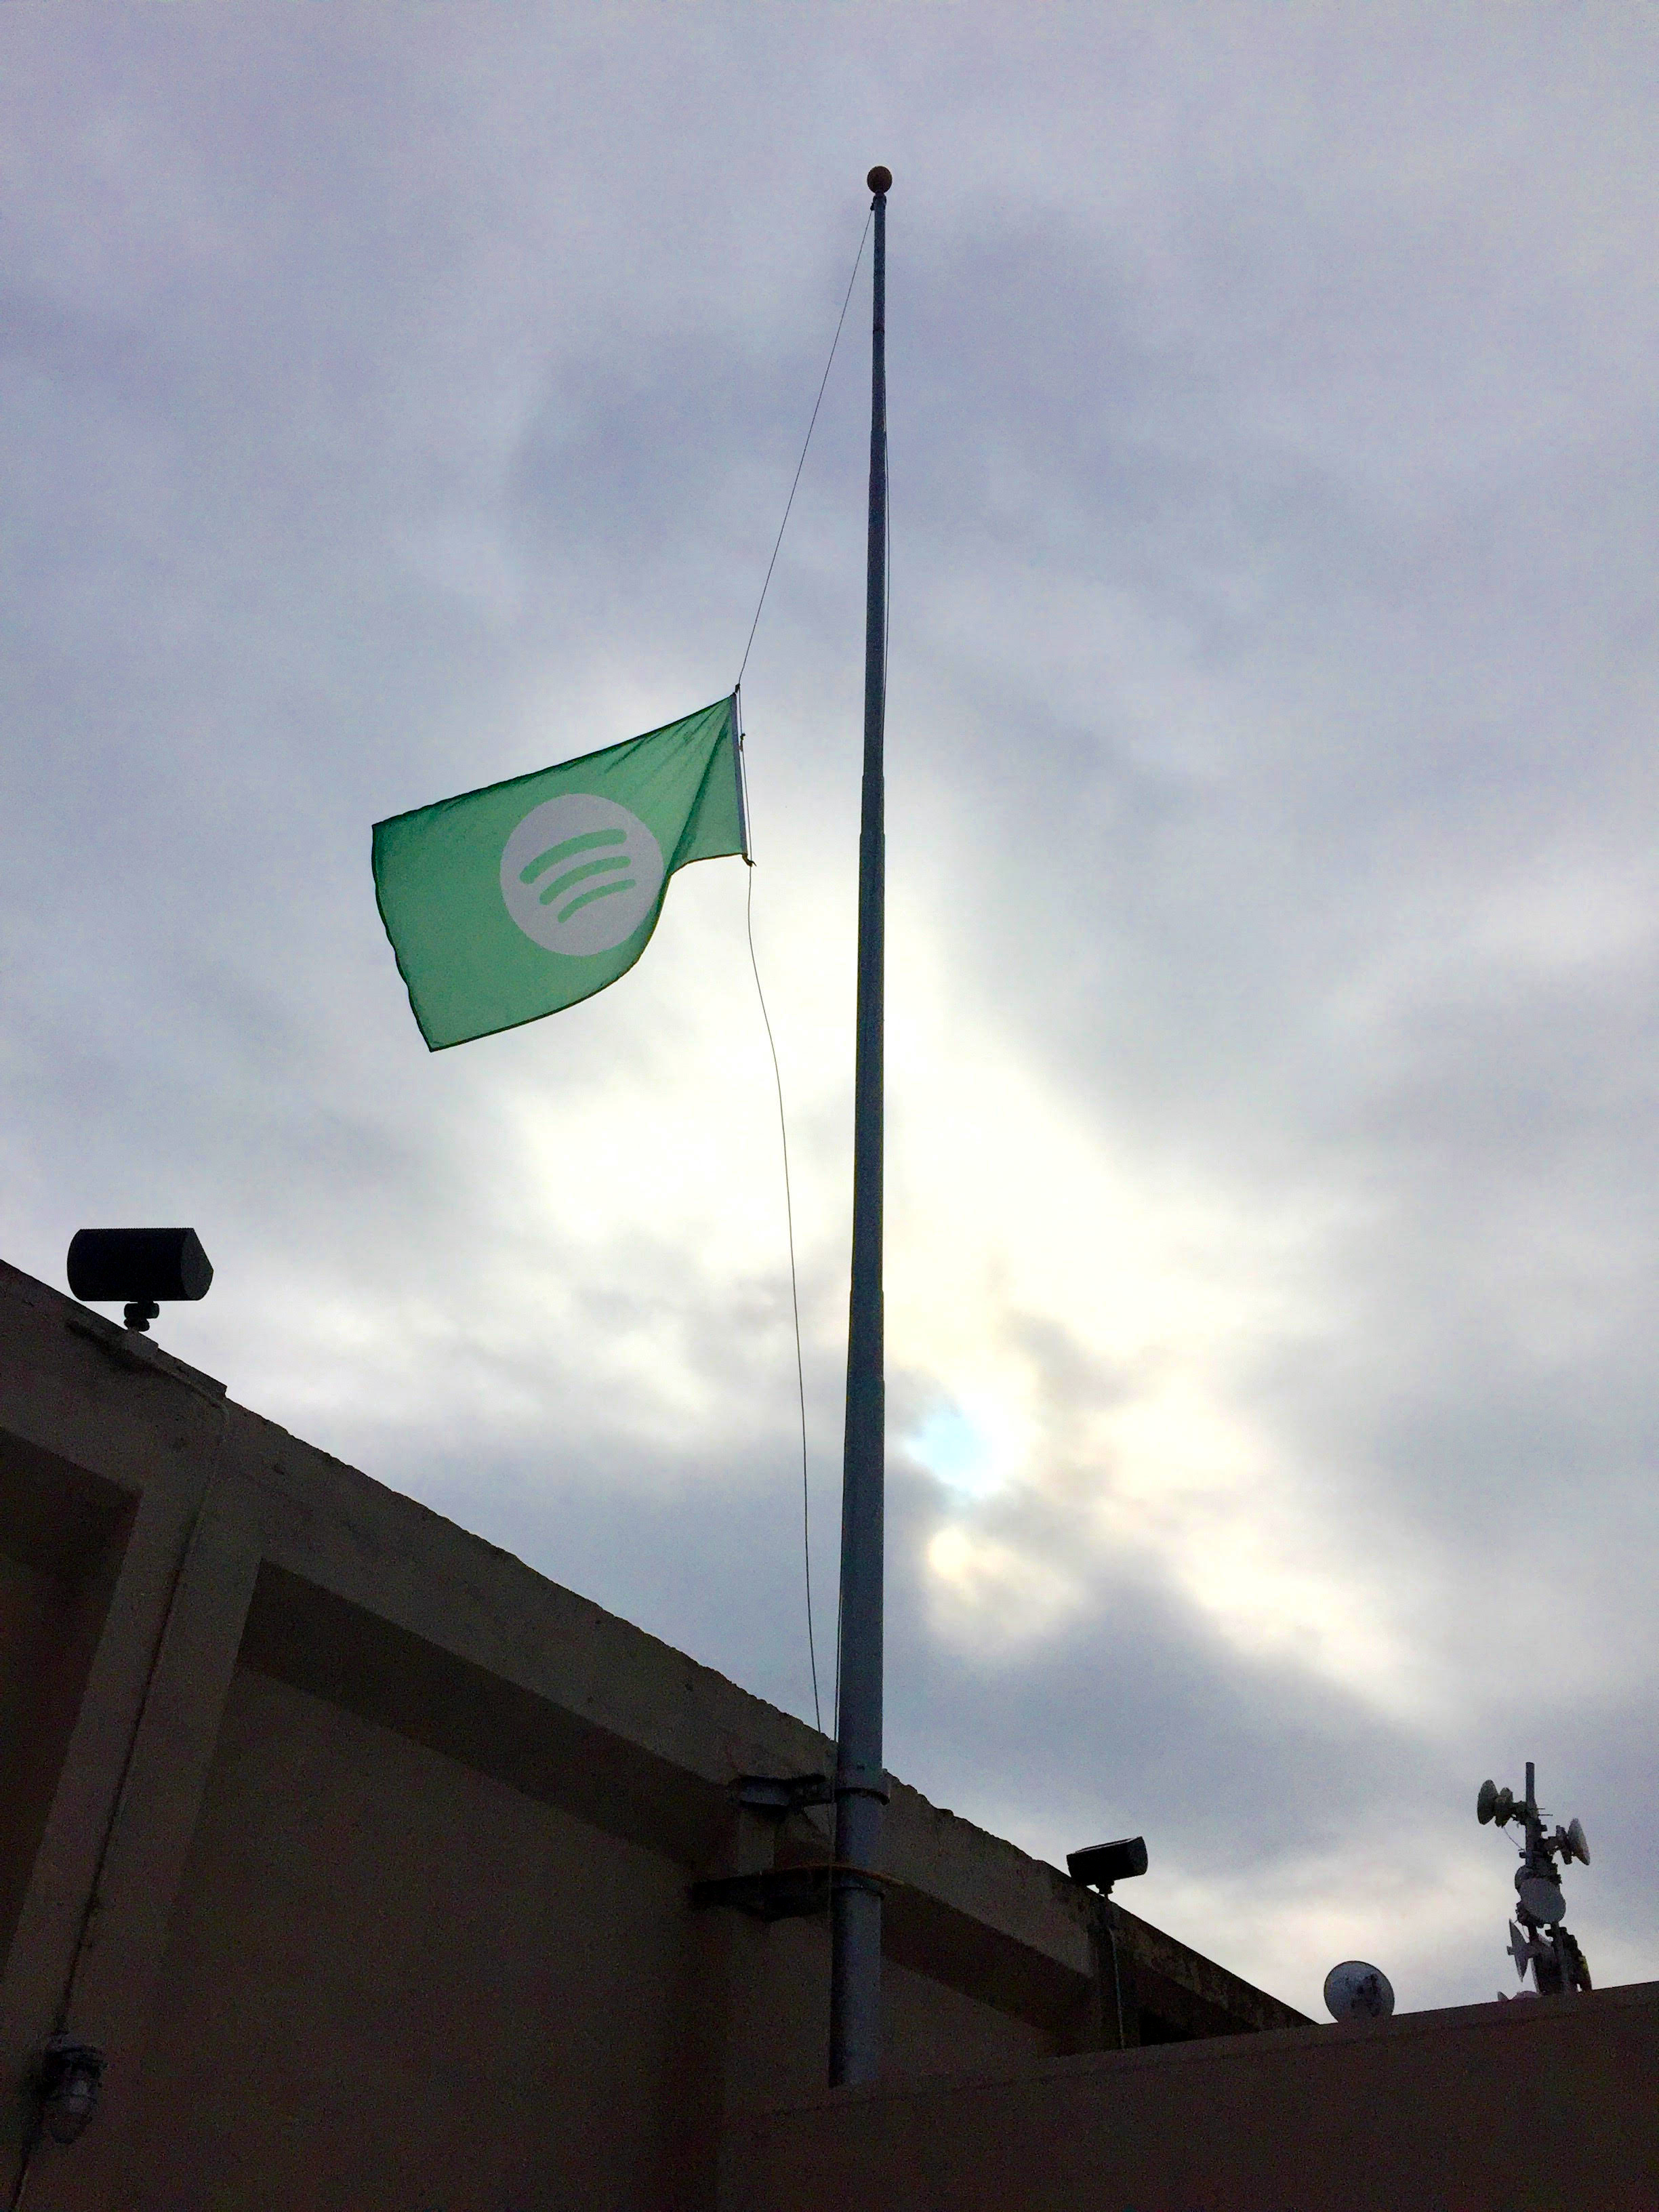 Spotify's flag at the company's U.S. headquarters in San Francisco